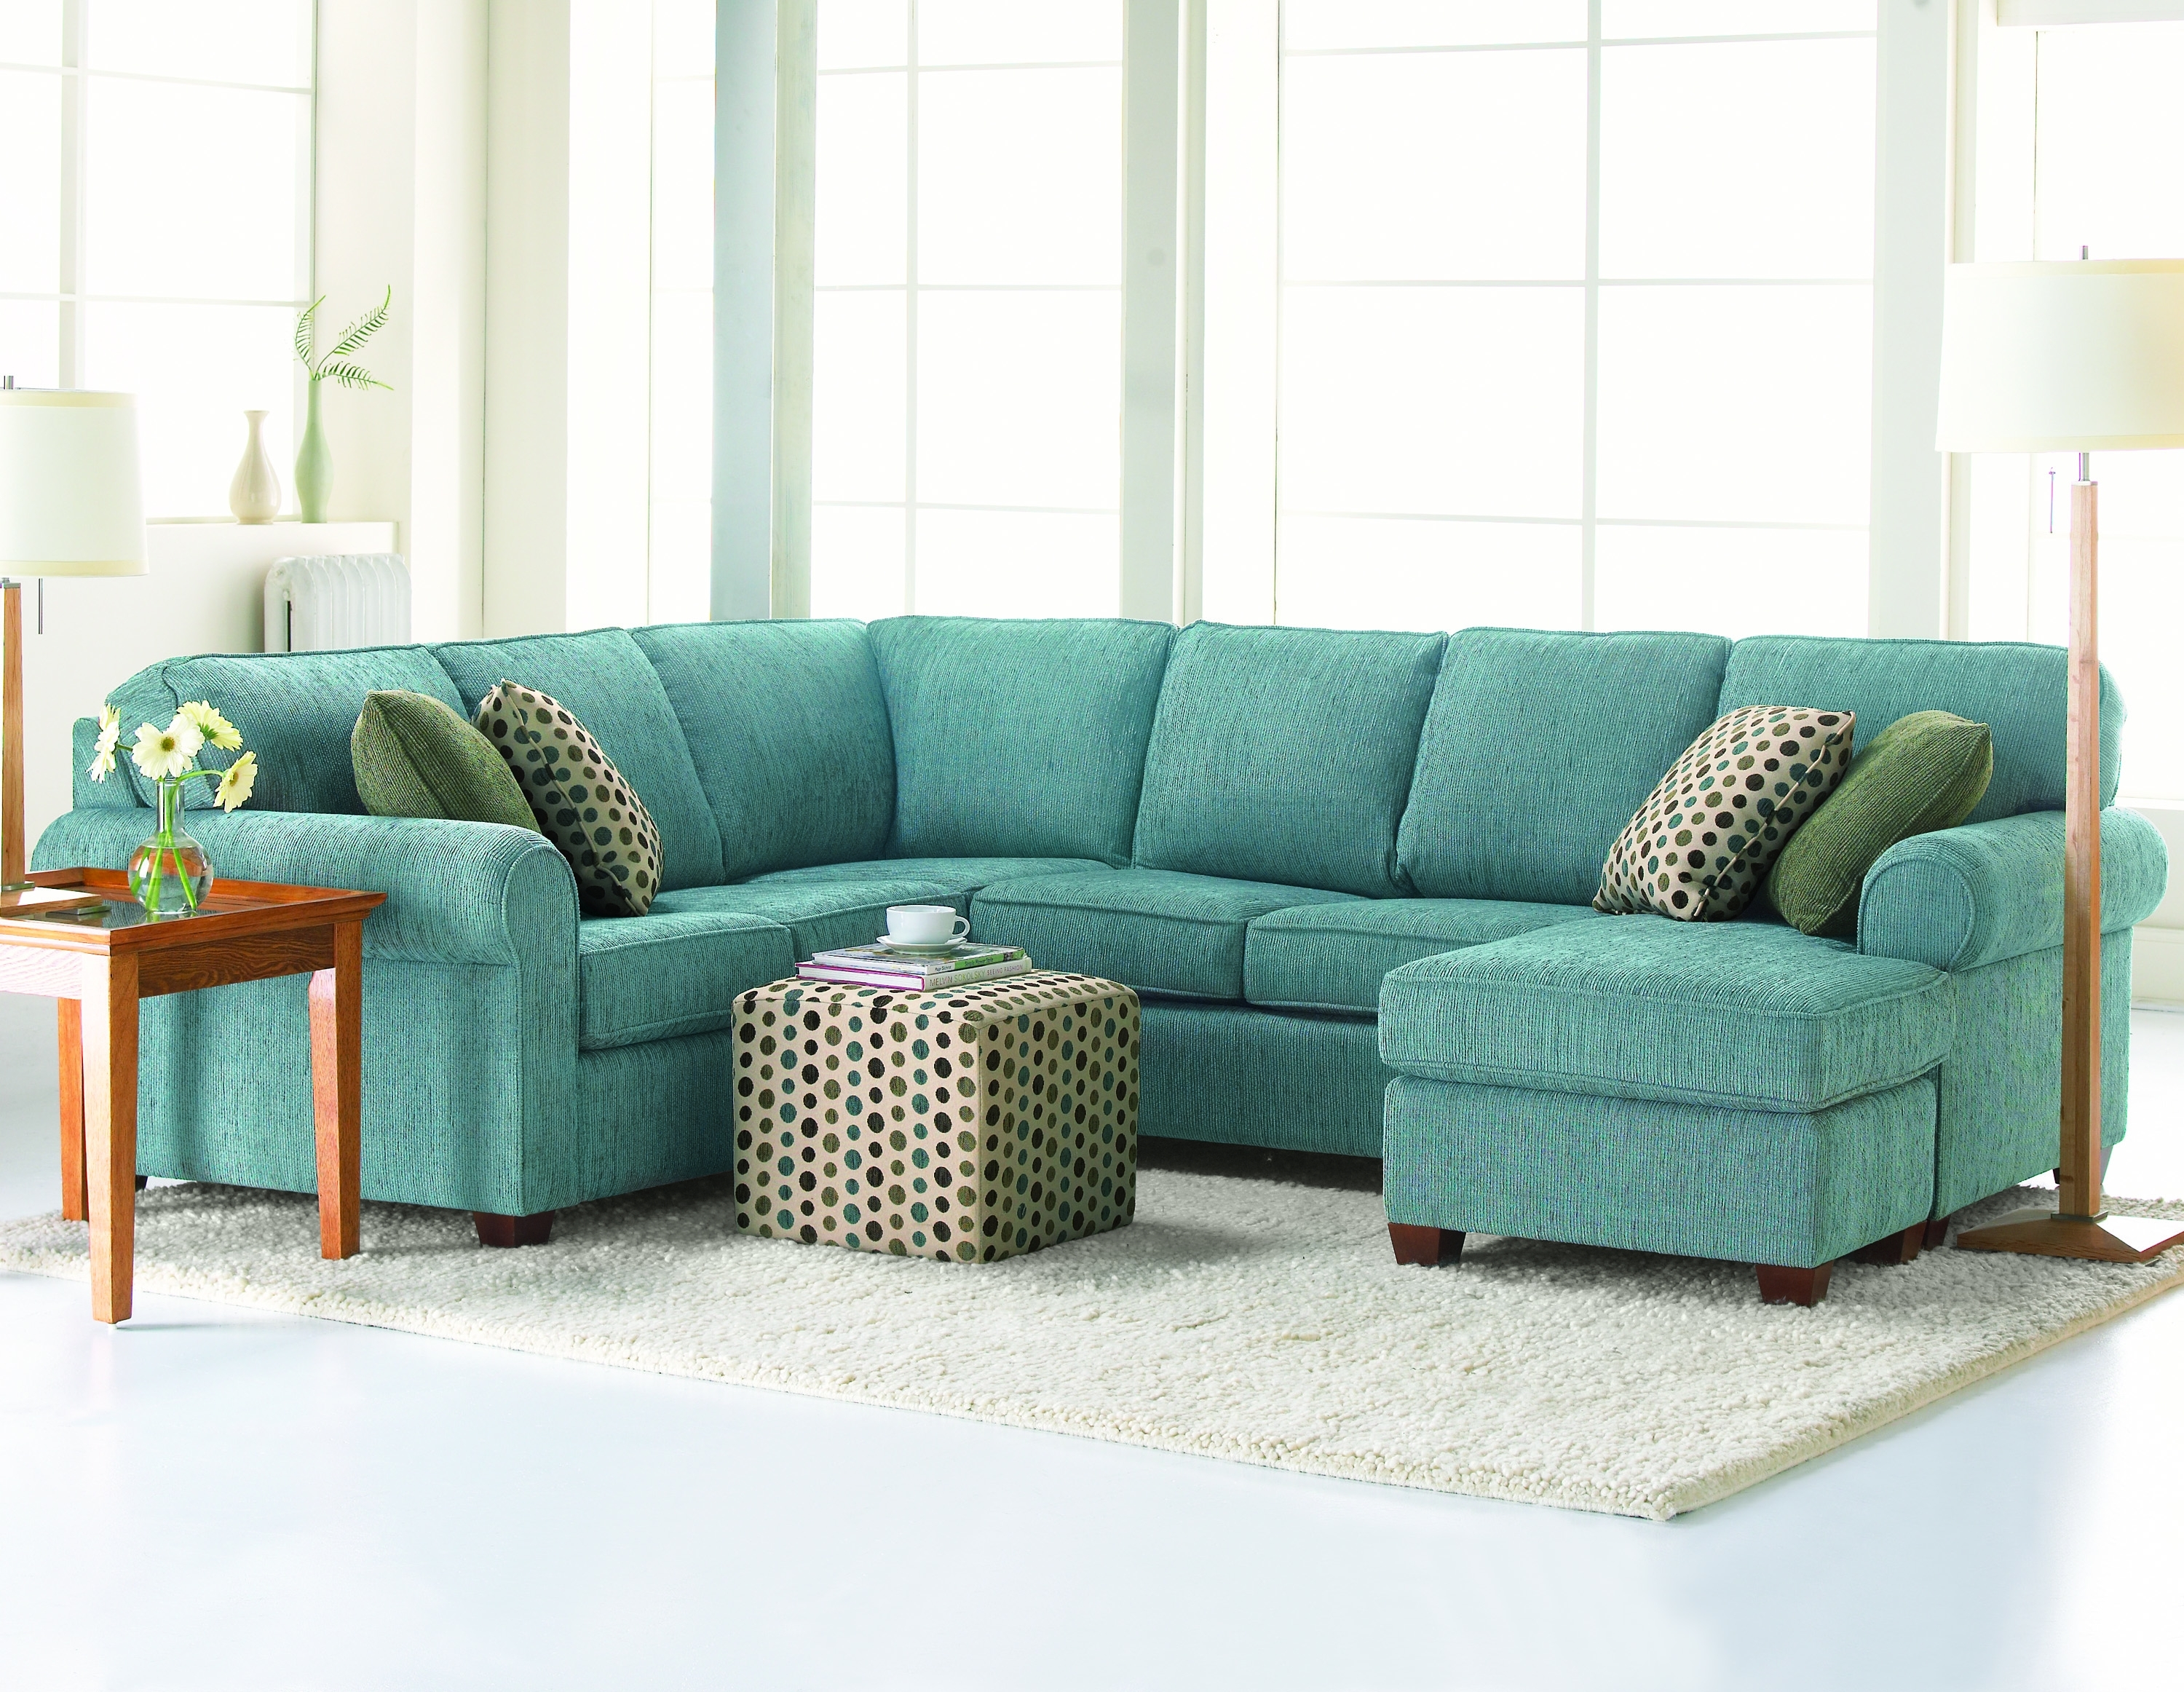 sectional sofas ontario canada gothic for sale 10 collection of sofa ideas